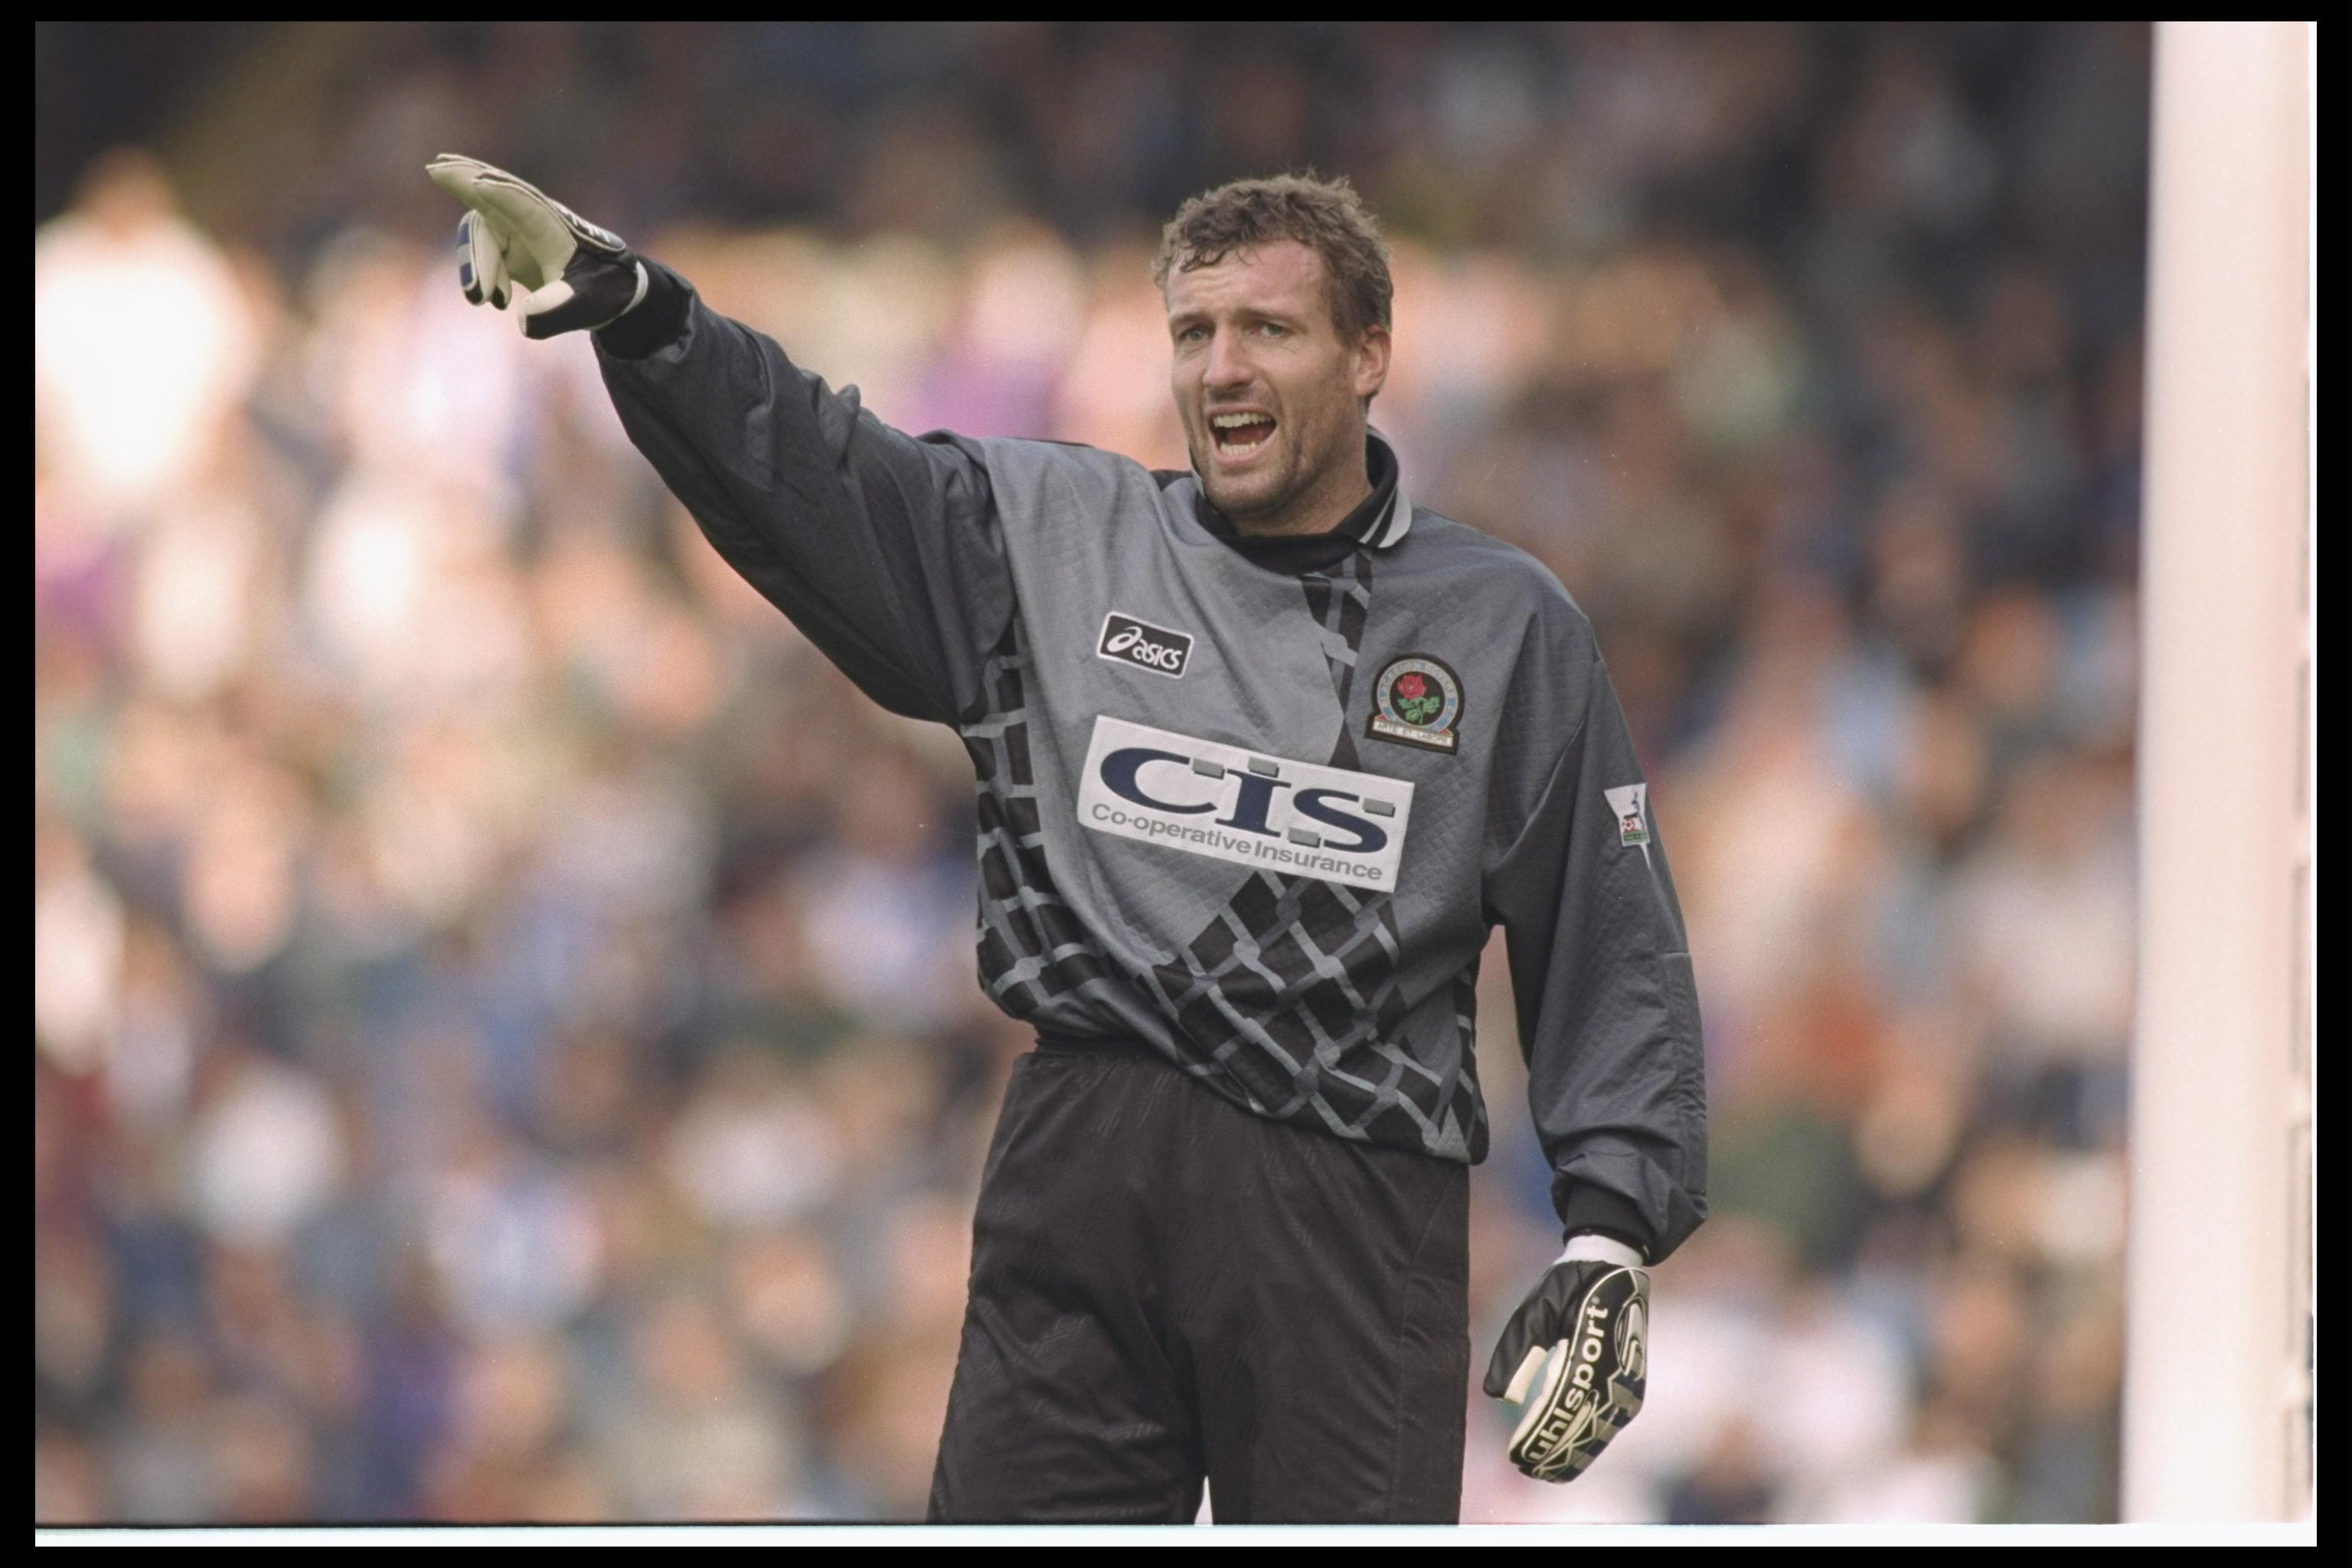 Everything about this picture of Tim Flowers feels vintage